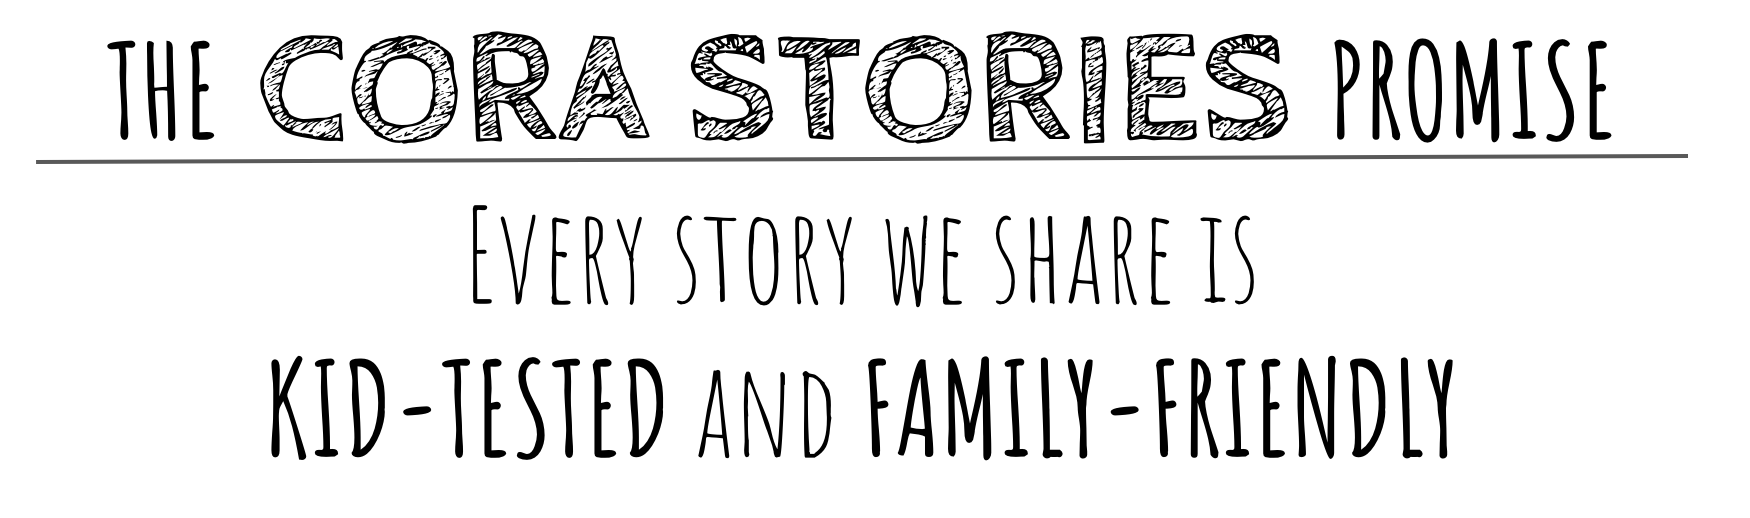 The Cora Stories Promise: Every story we share is kid-tested and family-friendly